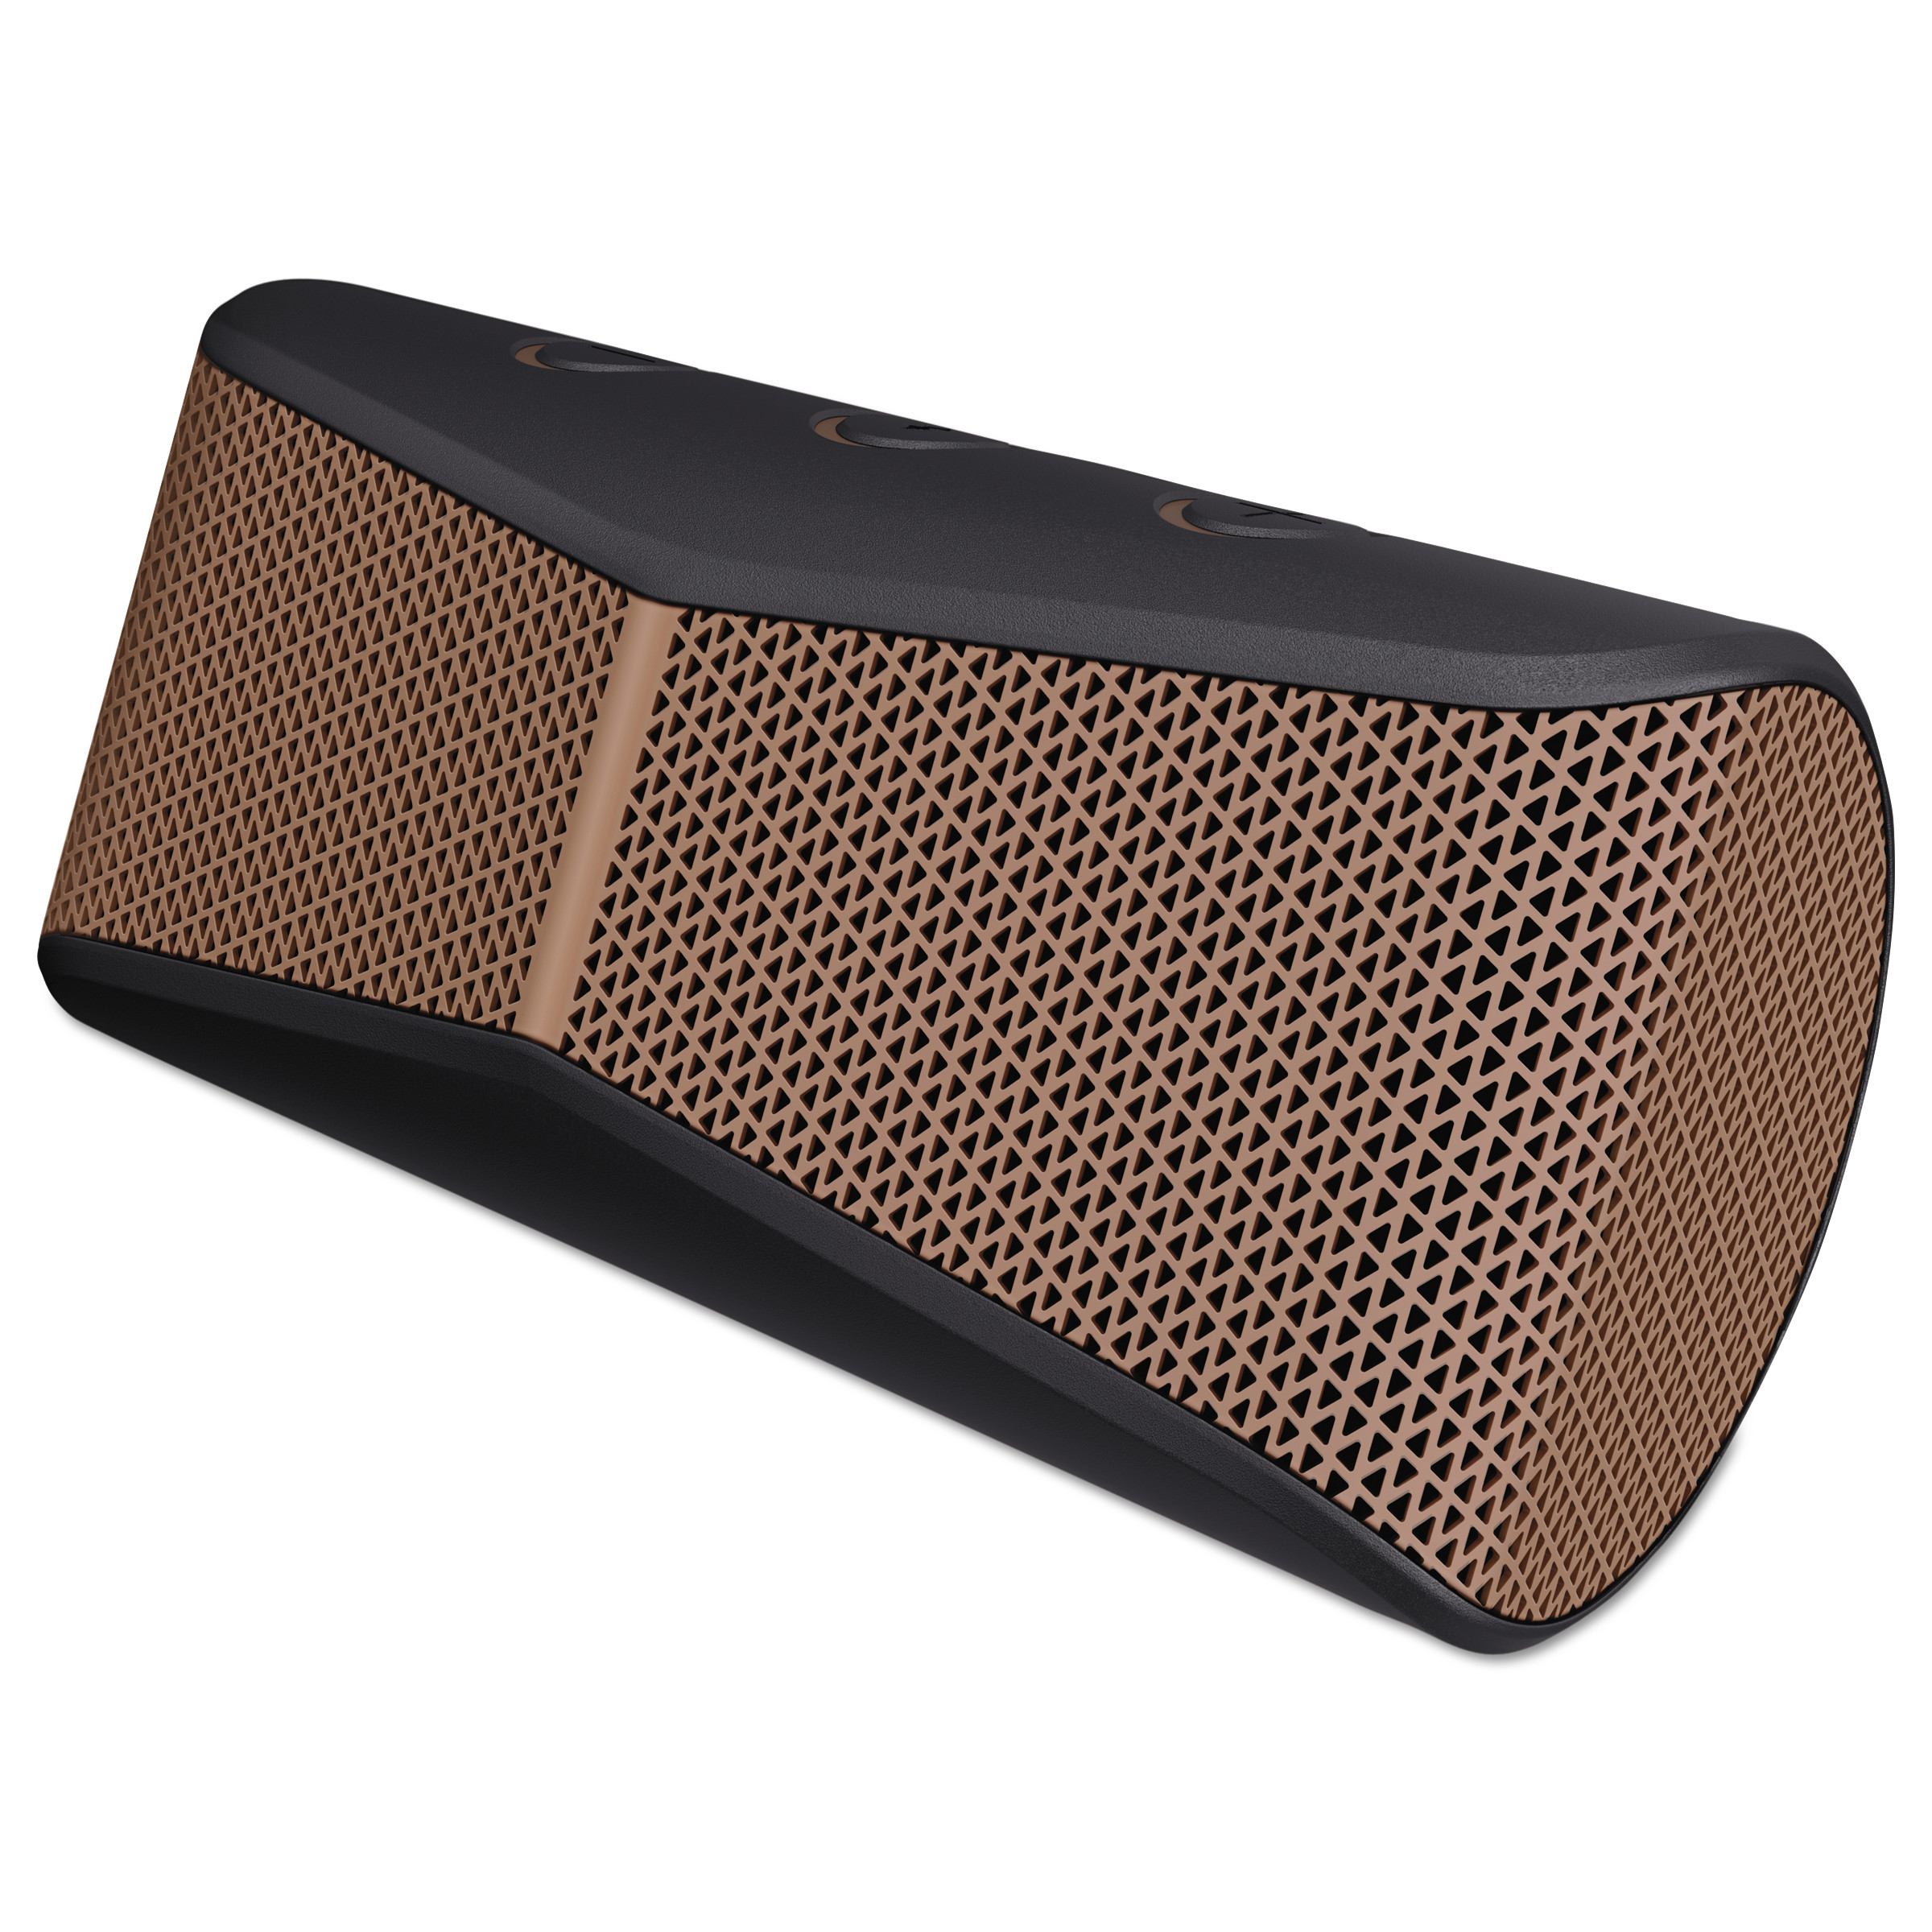 Logitech X300 Mobile Wireless Stereo Speaker, Black